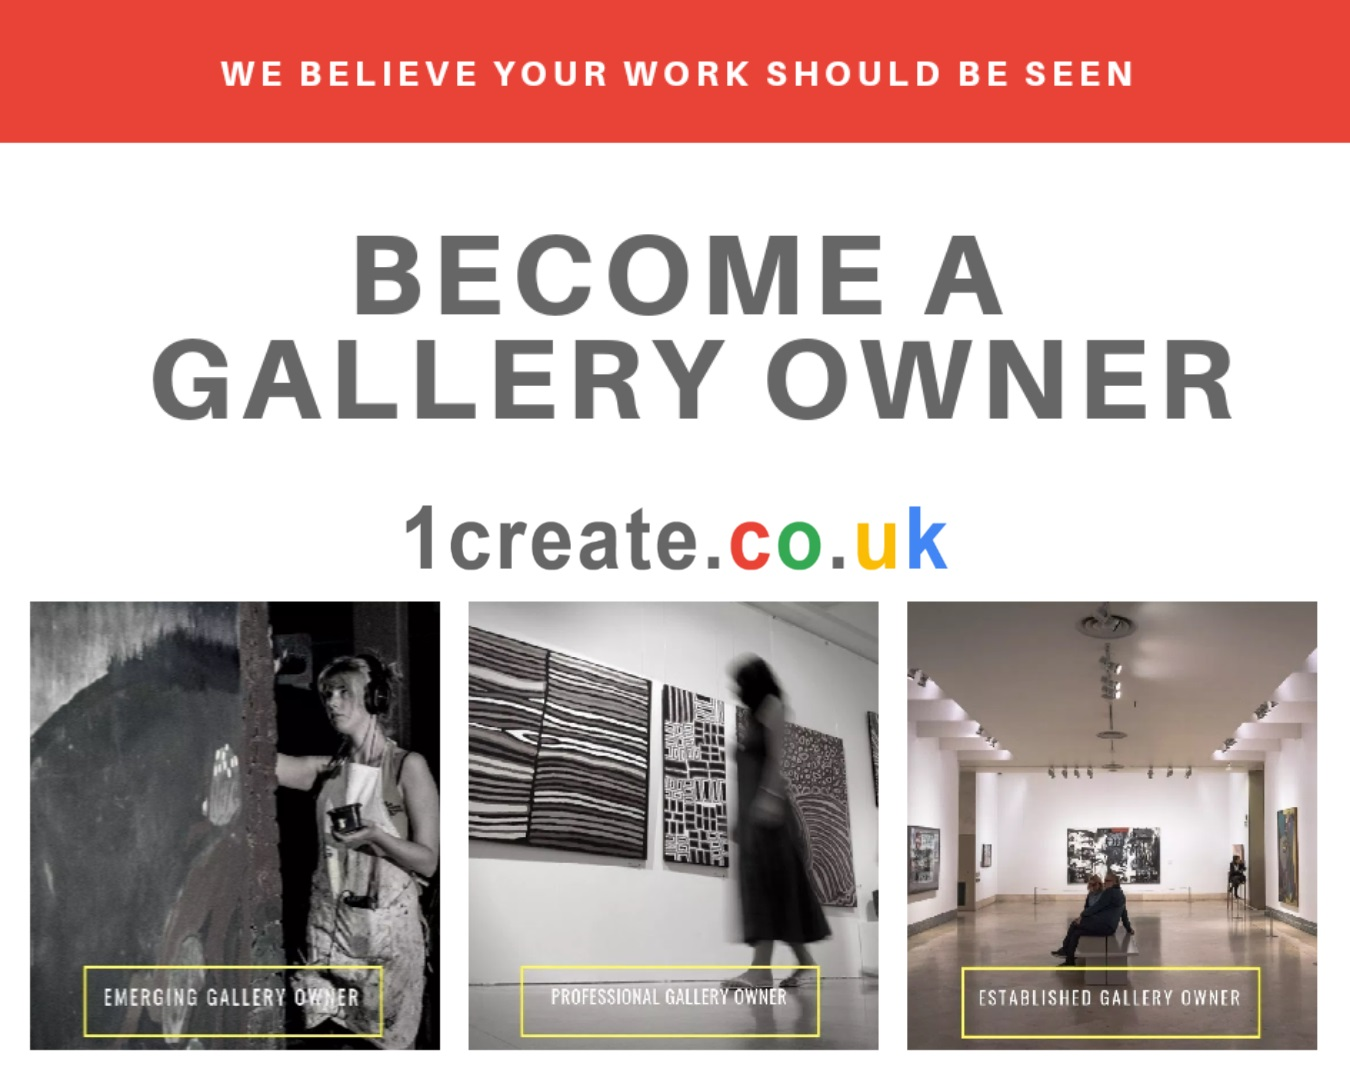 1create - become a gallery owner